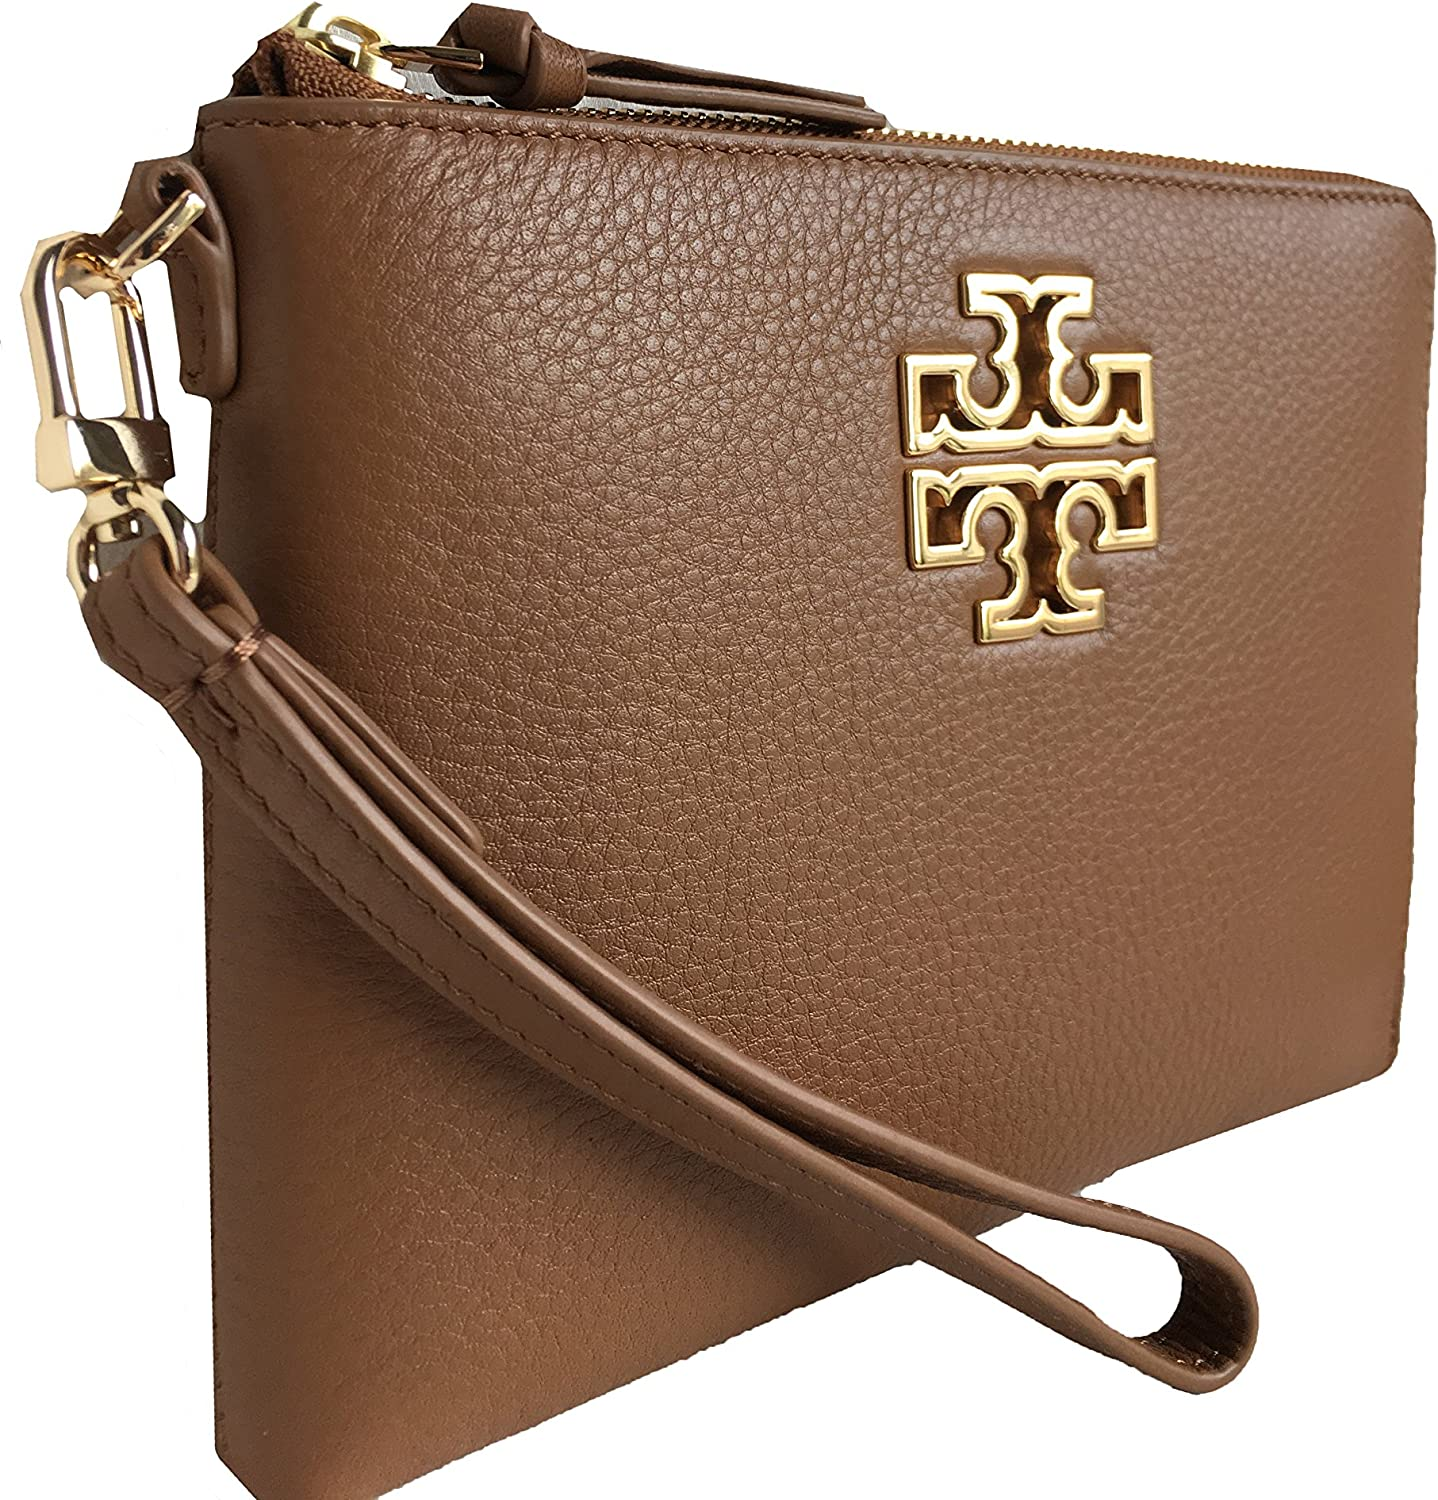 Tory Burch Britten Large Pebbled Leather Zip Pouch Wristlet (Bark)